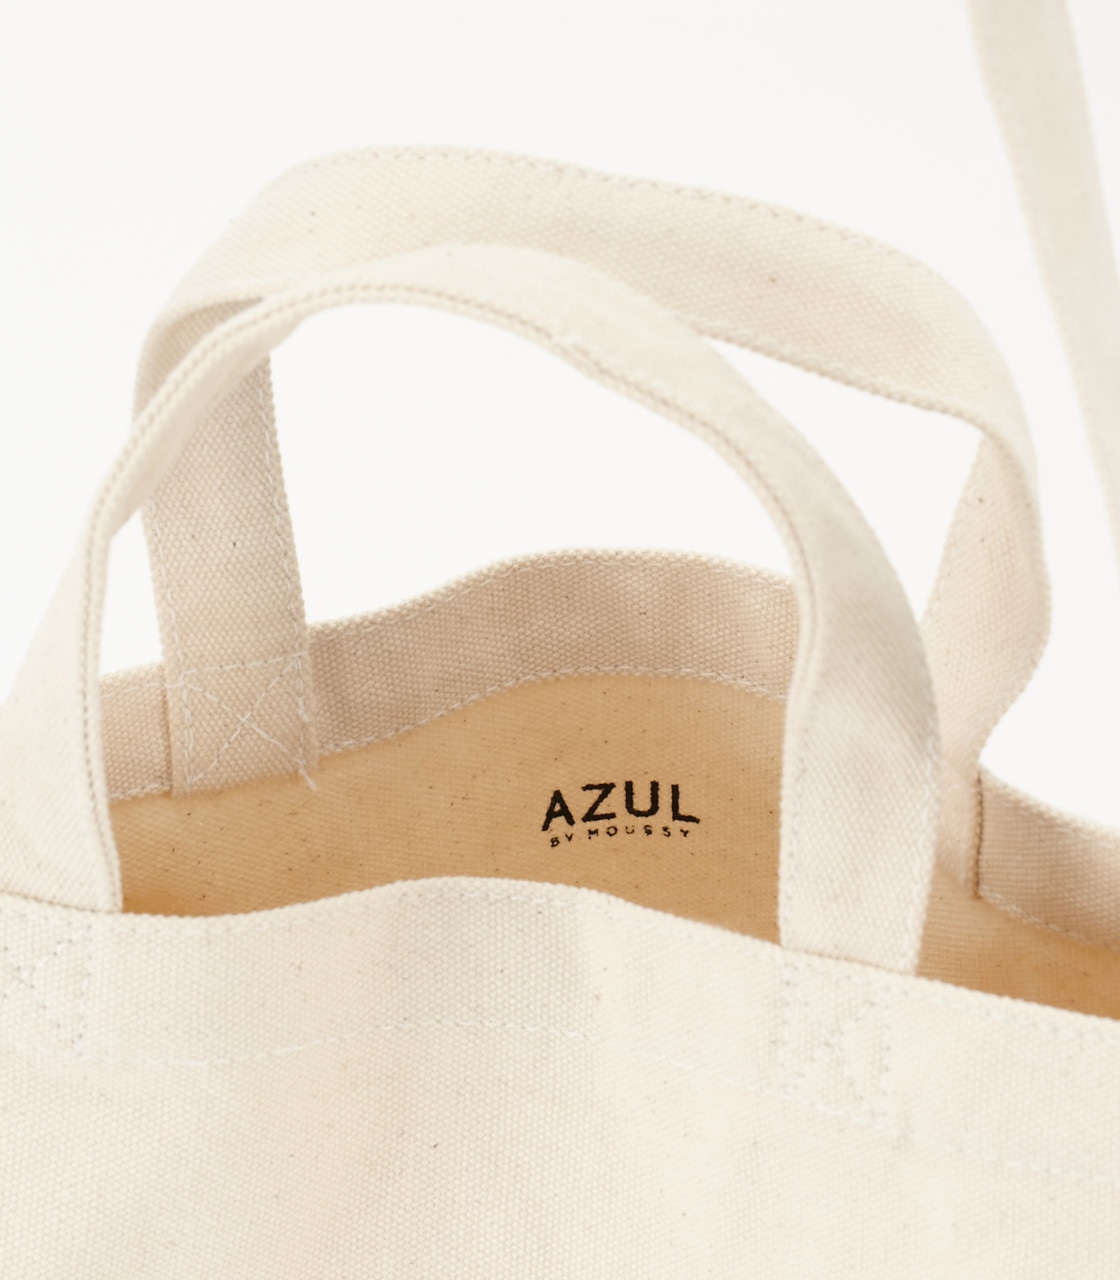 《WEB限定サマーセール》【AZUL BY MOUSSY】BACKROOMSキャンバストートバッグ 詳細画像 柄WHT 2